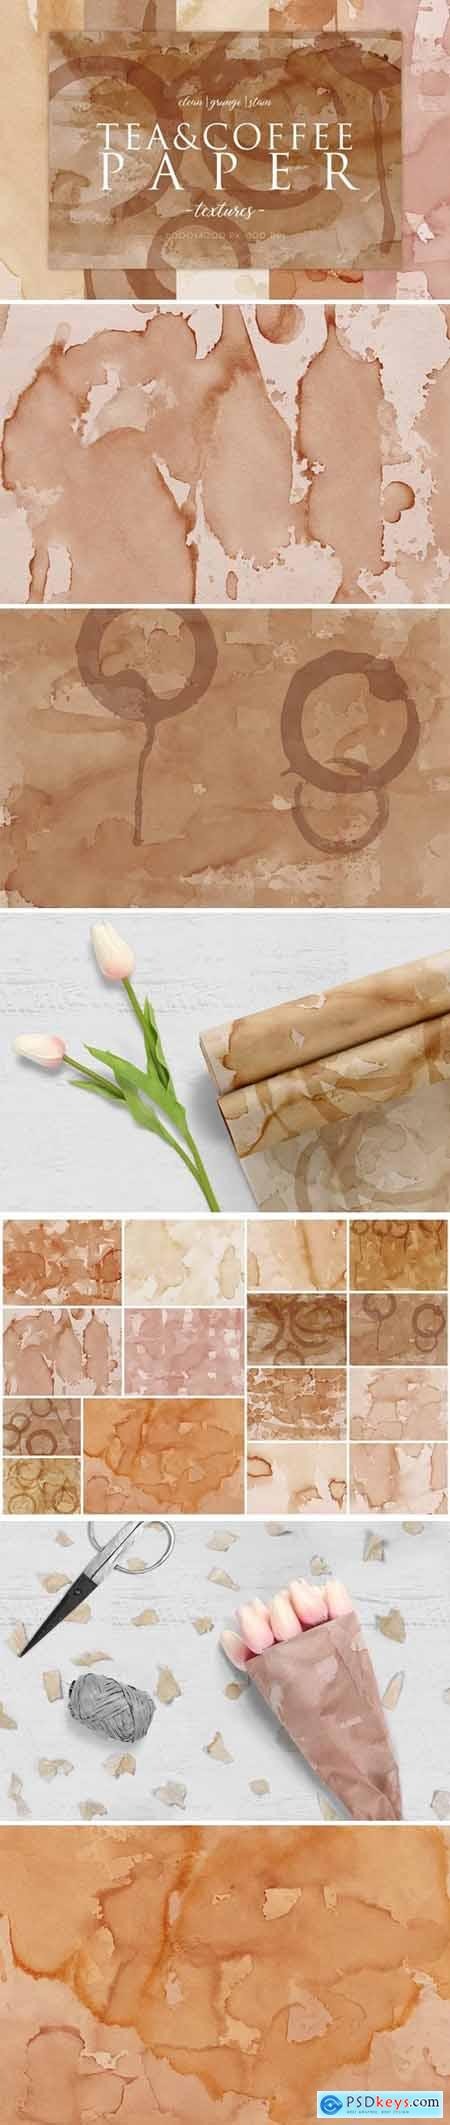 15 Coffee Stain Paper Textures